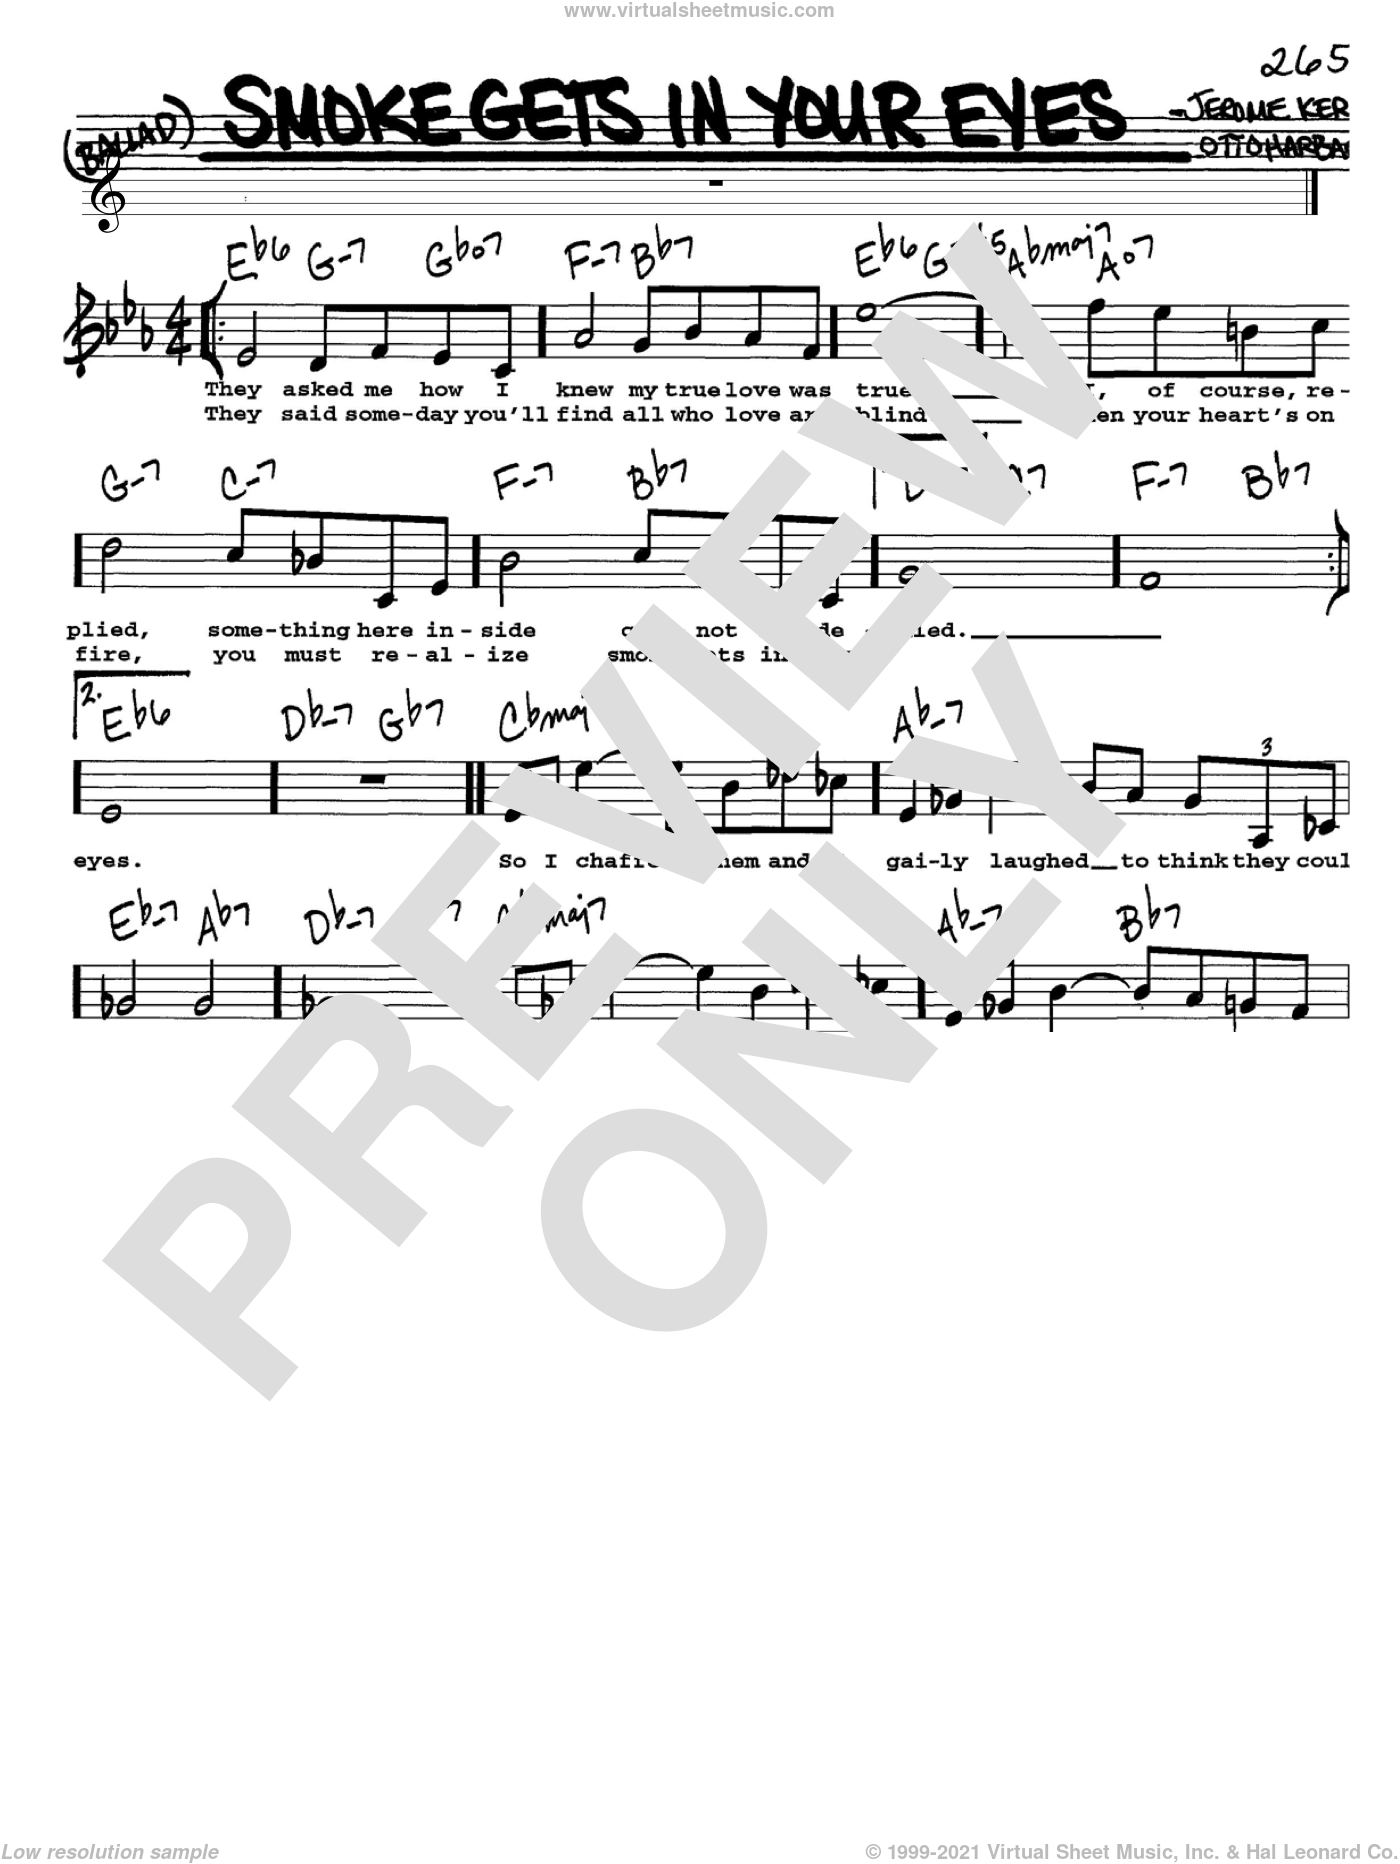 Smoke Gets In Your Eyes sheet music for voice and other instruments  by Jerome Kern, The Platters and Otto Harbach, intermediate skill level